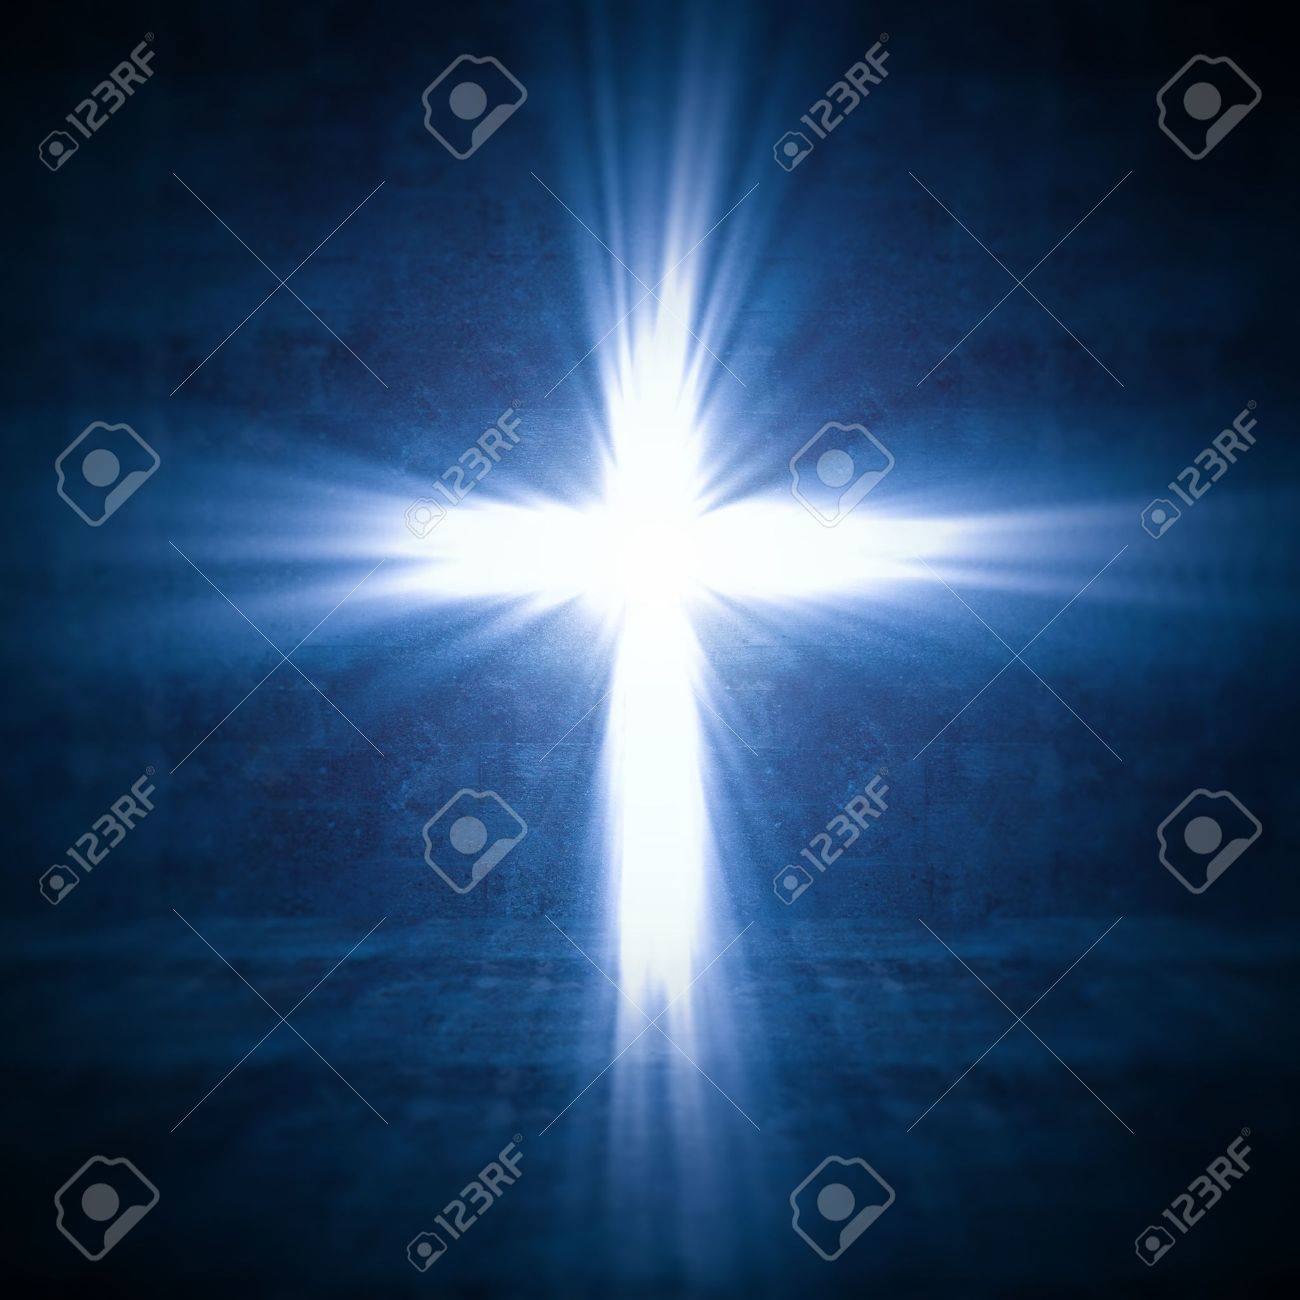 Silhouette of the holy cross on background of storm clouds stock - Christ On The Cross 3d Image Of Cross Of Light Stock Photo